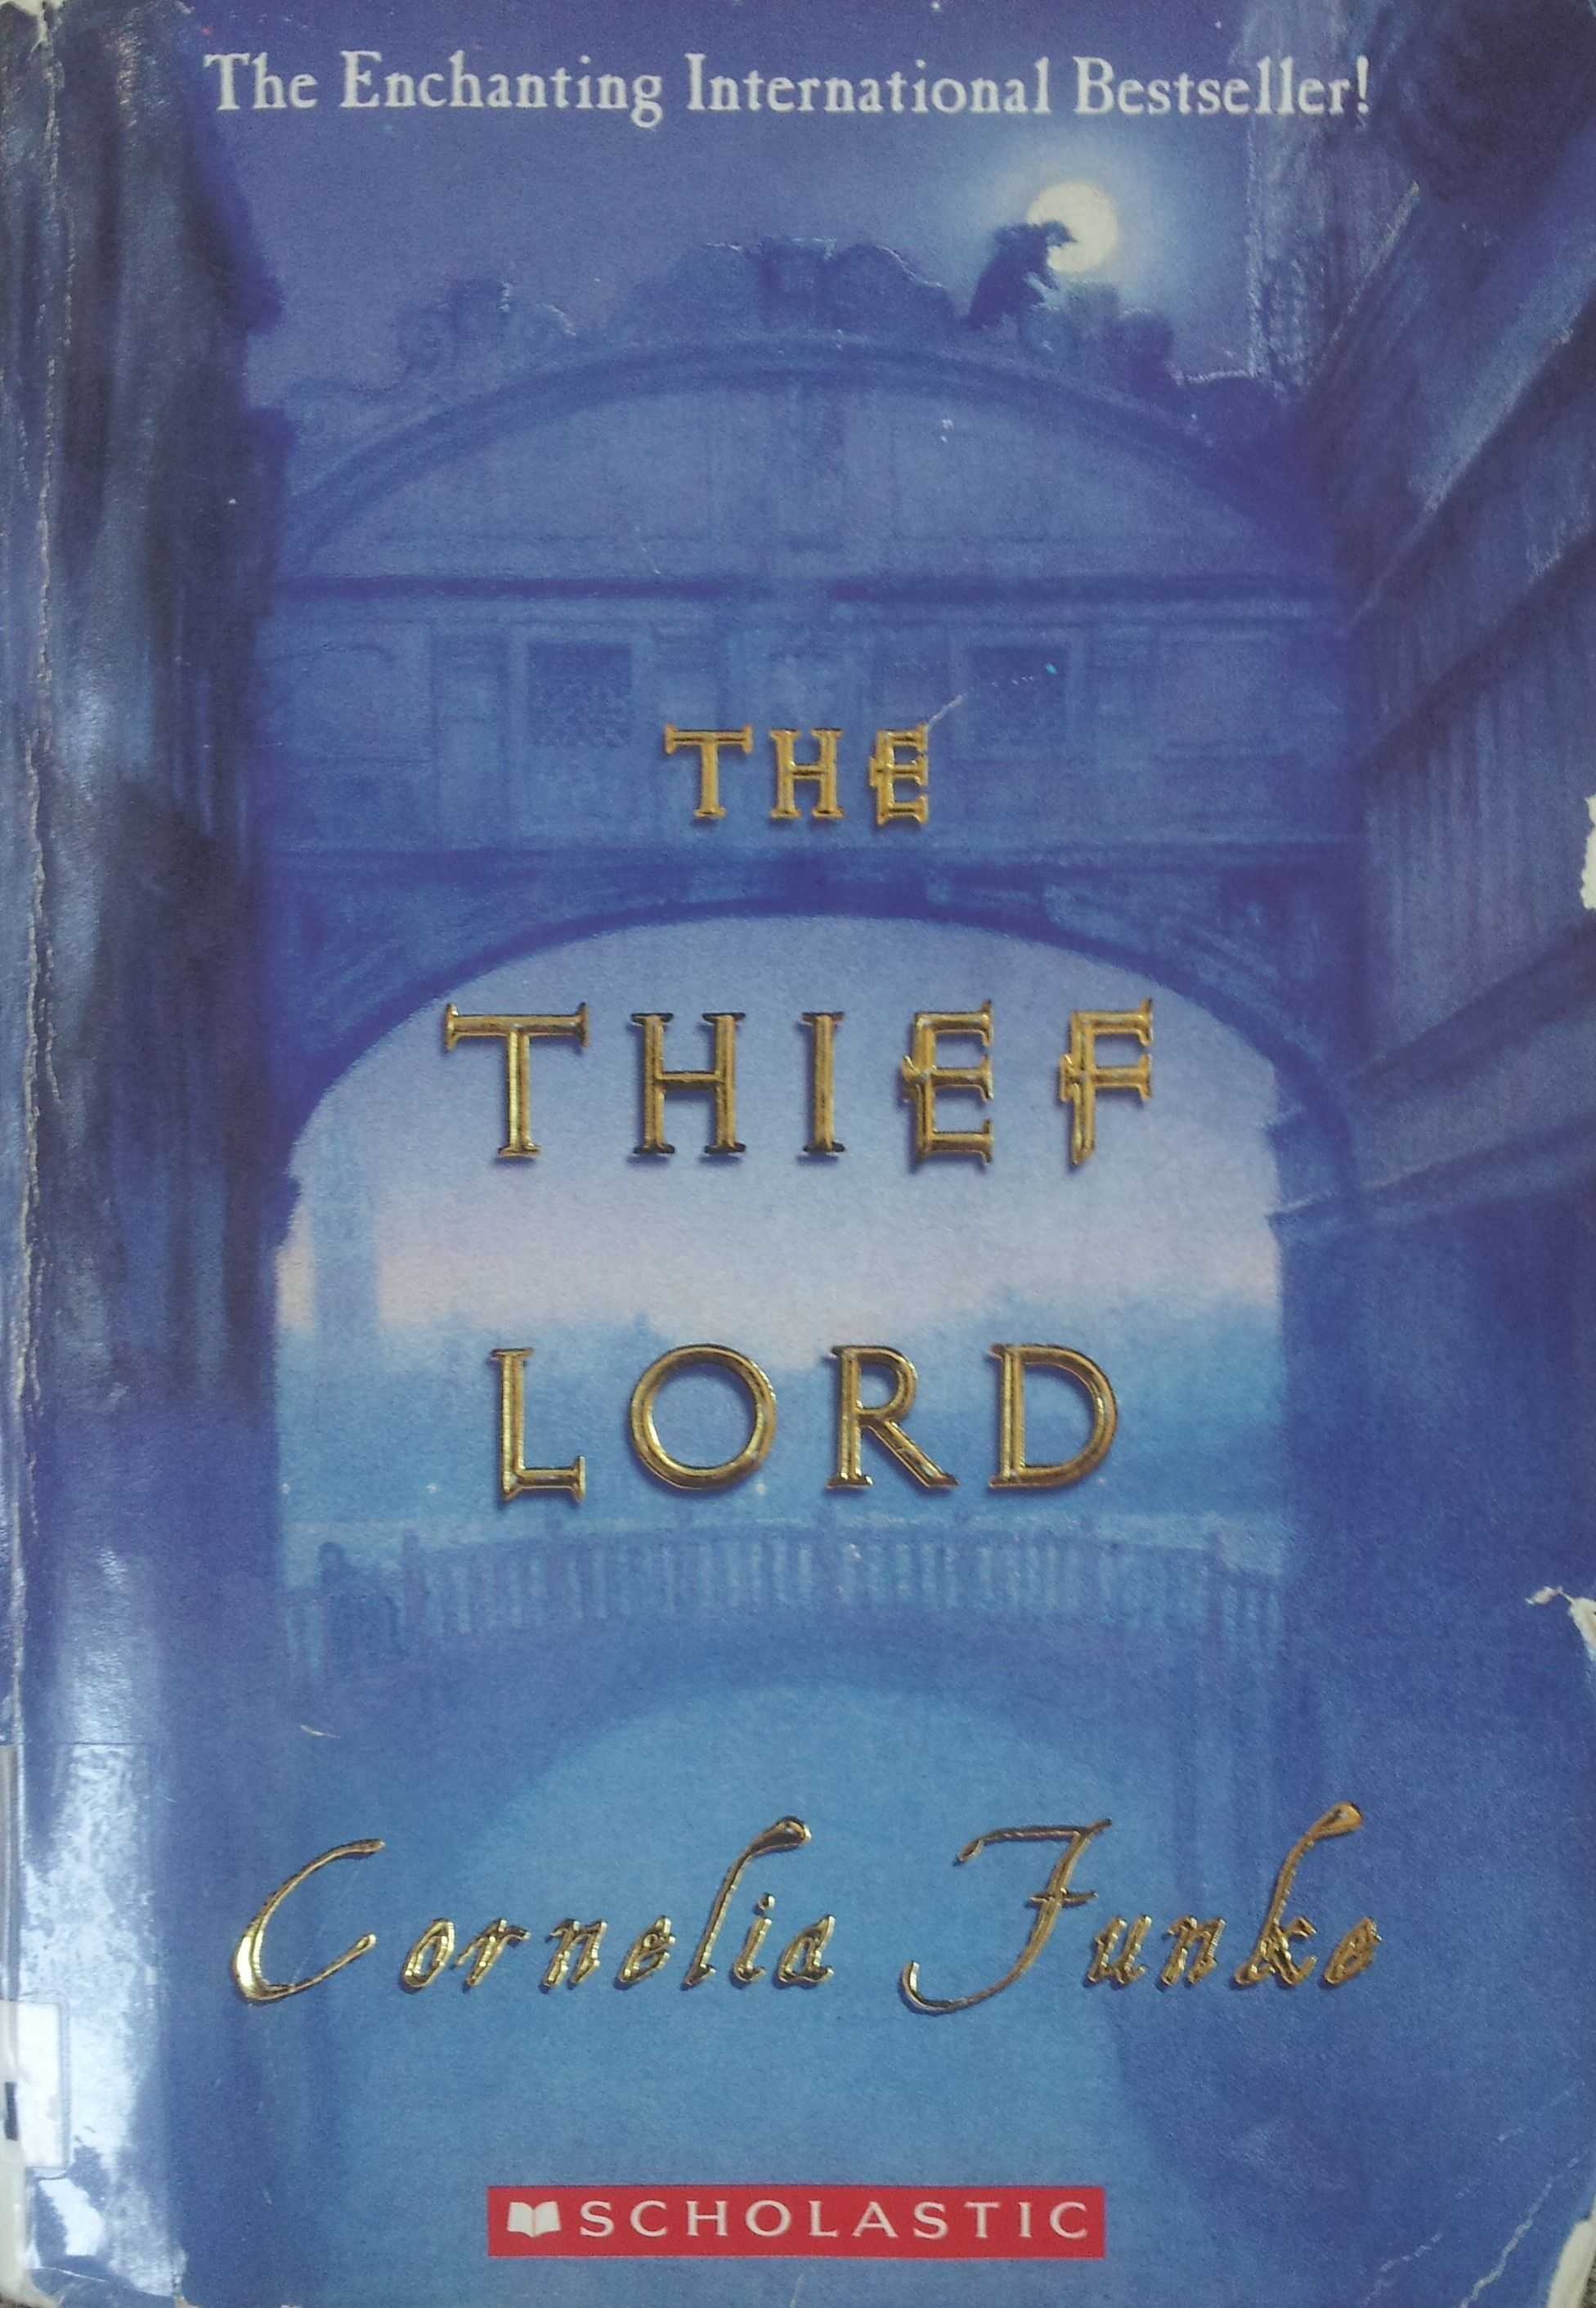 Quick Book Review The Thief Lord by Cornelia Funke